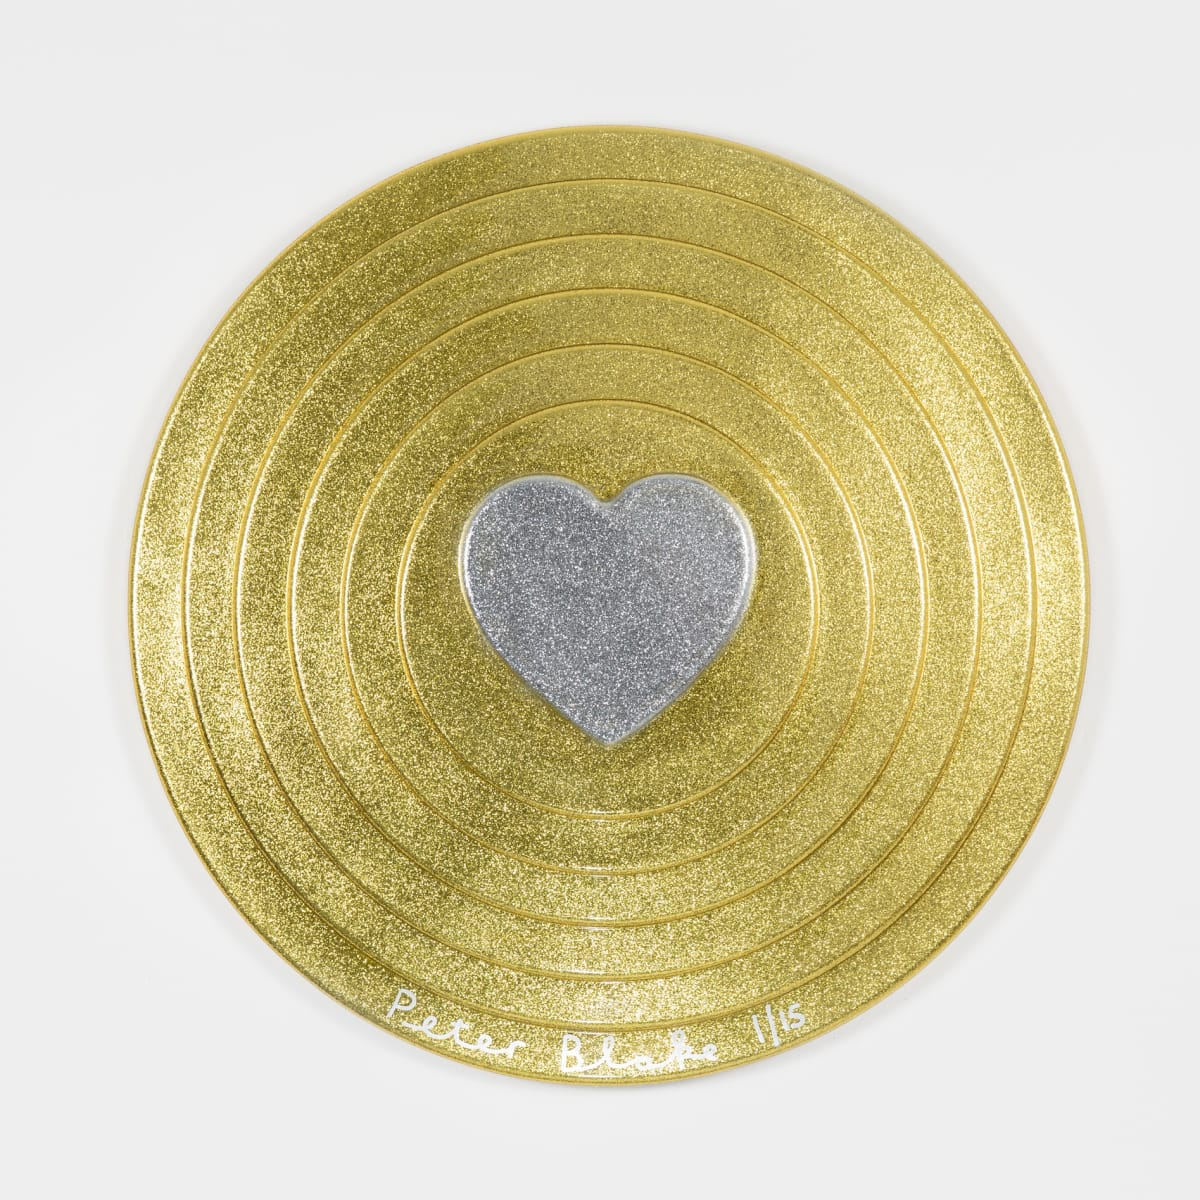 Peter Blake Silver heart on gold Target (metal flake), 2017 Vacuum formed plastic, paint 69 x 69 x 10 cm Edition of 15 Signed and numbered